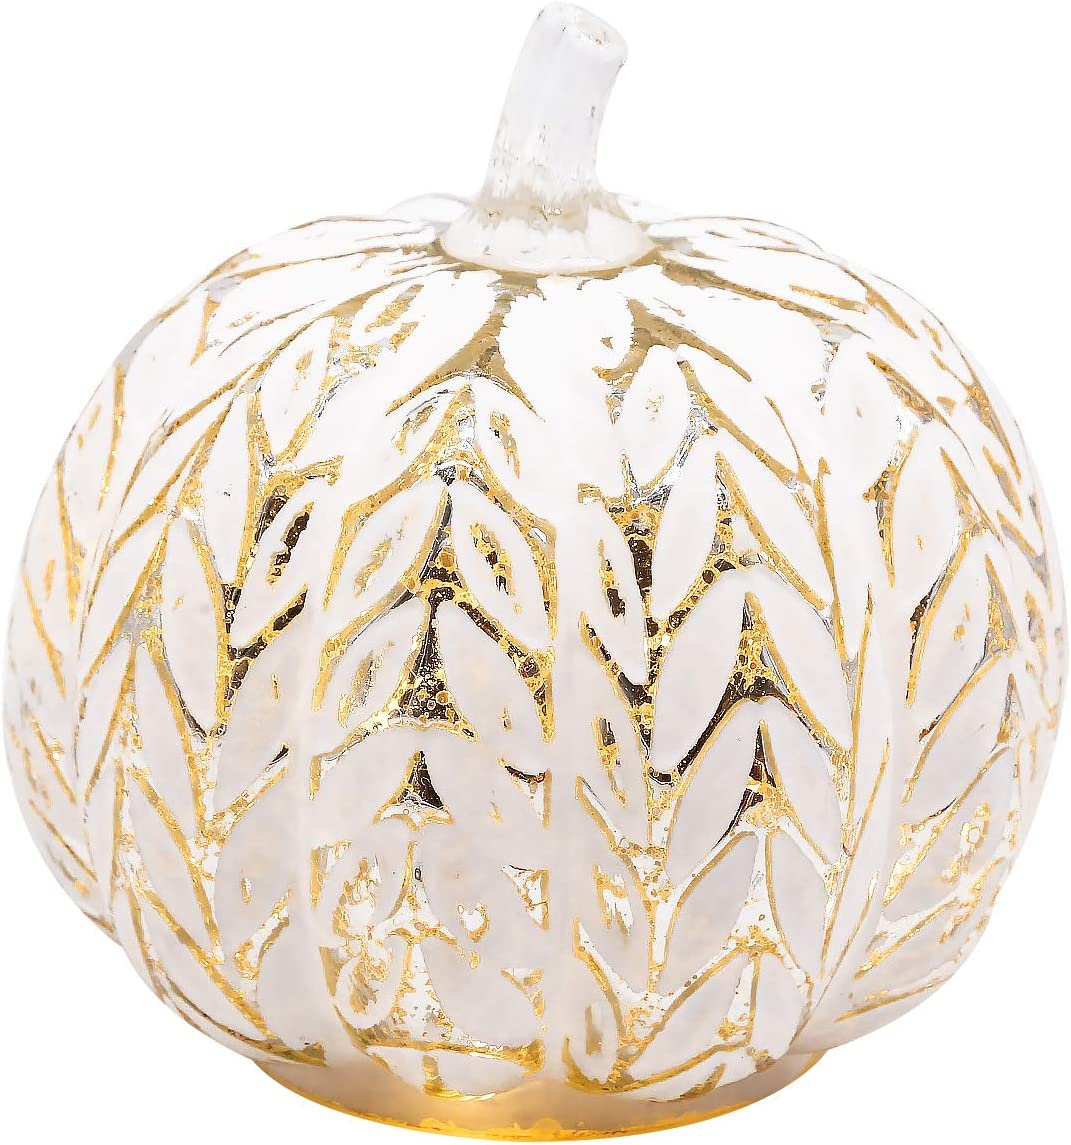 Romingo Mercury Glass Pumpkin Battery Operated LED Light with Timer and Home Fall Decor, Silver Leaves, 6 inches